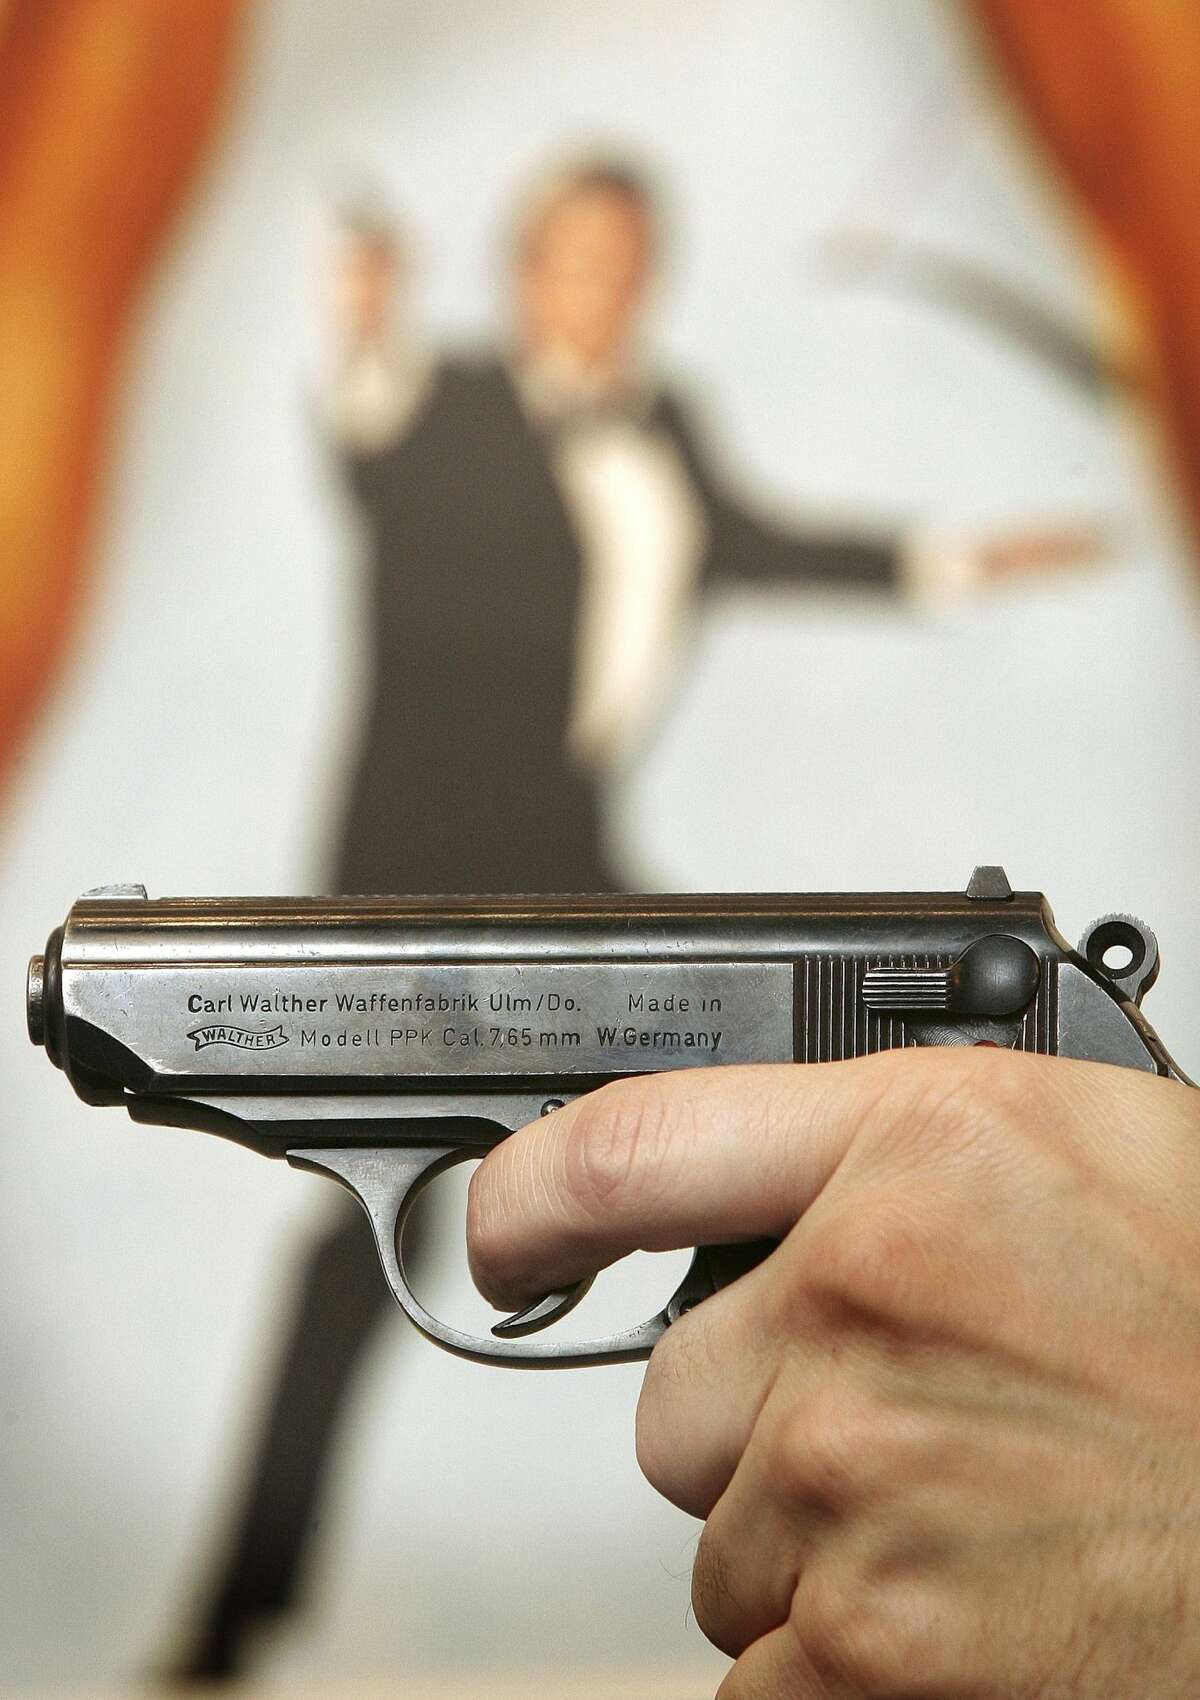 LONDON - NOVEMBER 02: A Walther PPK handgun is held up infront of a poster of the film 'For Your Eyes Only' during promotion of a sale of weapons from James Bond films on November 2, 2006 in London. Actor Daniel Craig will play Bond in 'Casino Royale' the 21st film made from author Ian Fleming's books. Christie's Film and Entertainment sale takes place on December 5, 2006. (Photo by Peter Macdiarmid/Getty Images)